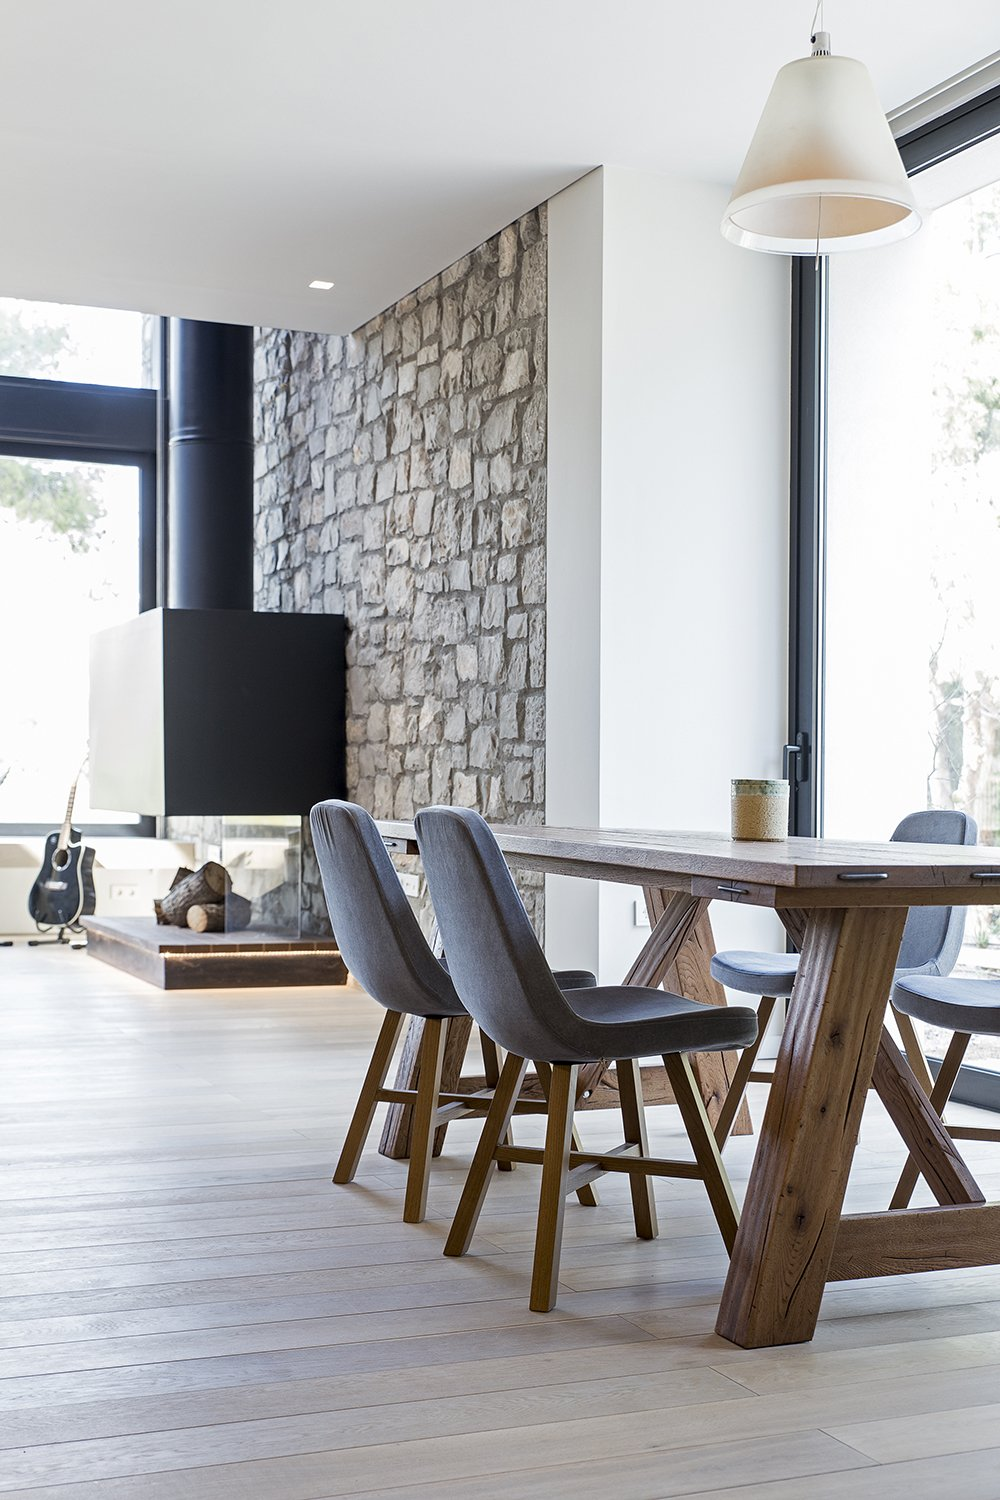 The natural light floods the space throughout the day Tagged: Dining Room.  The Wedge House by Marianna Athanasiadou